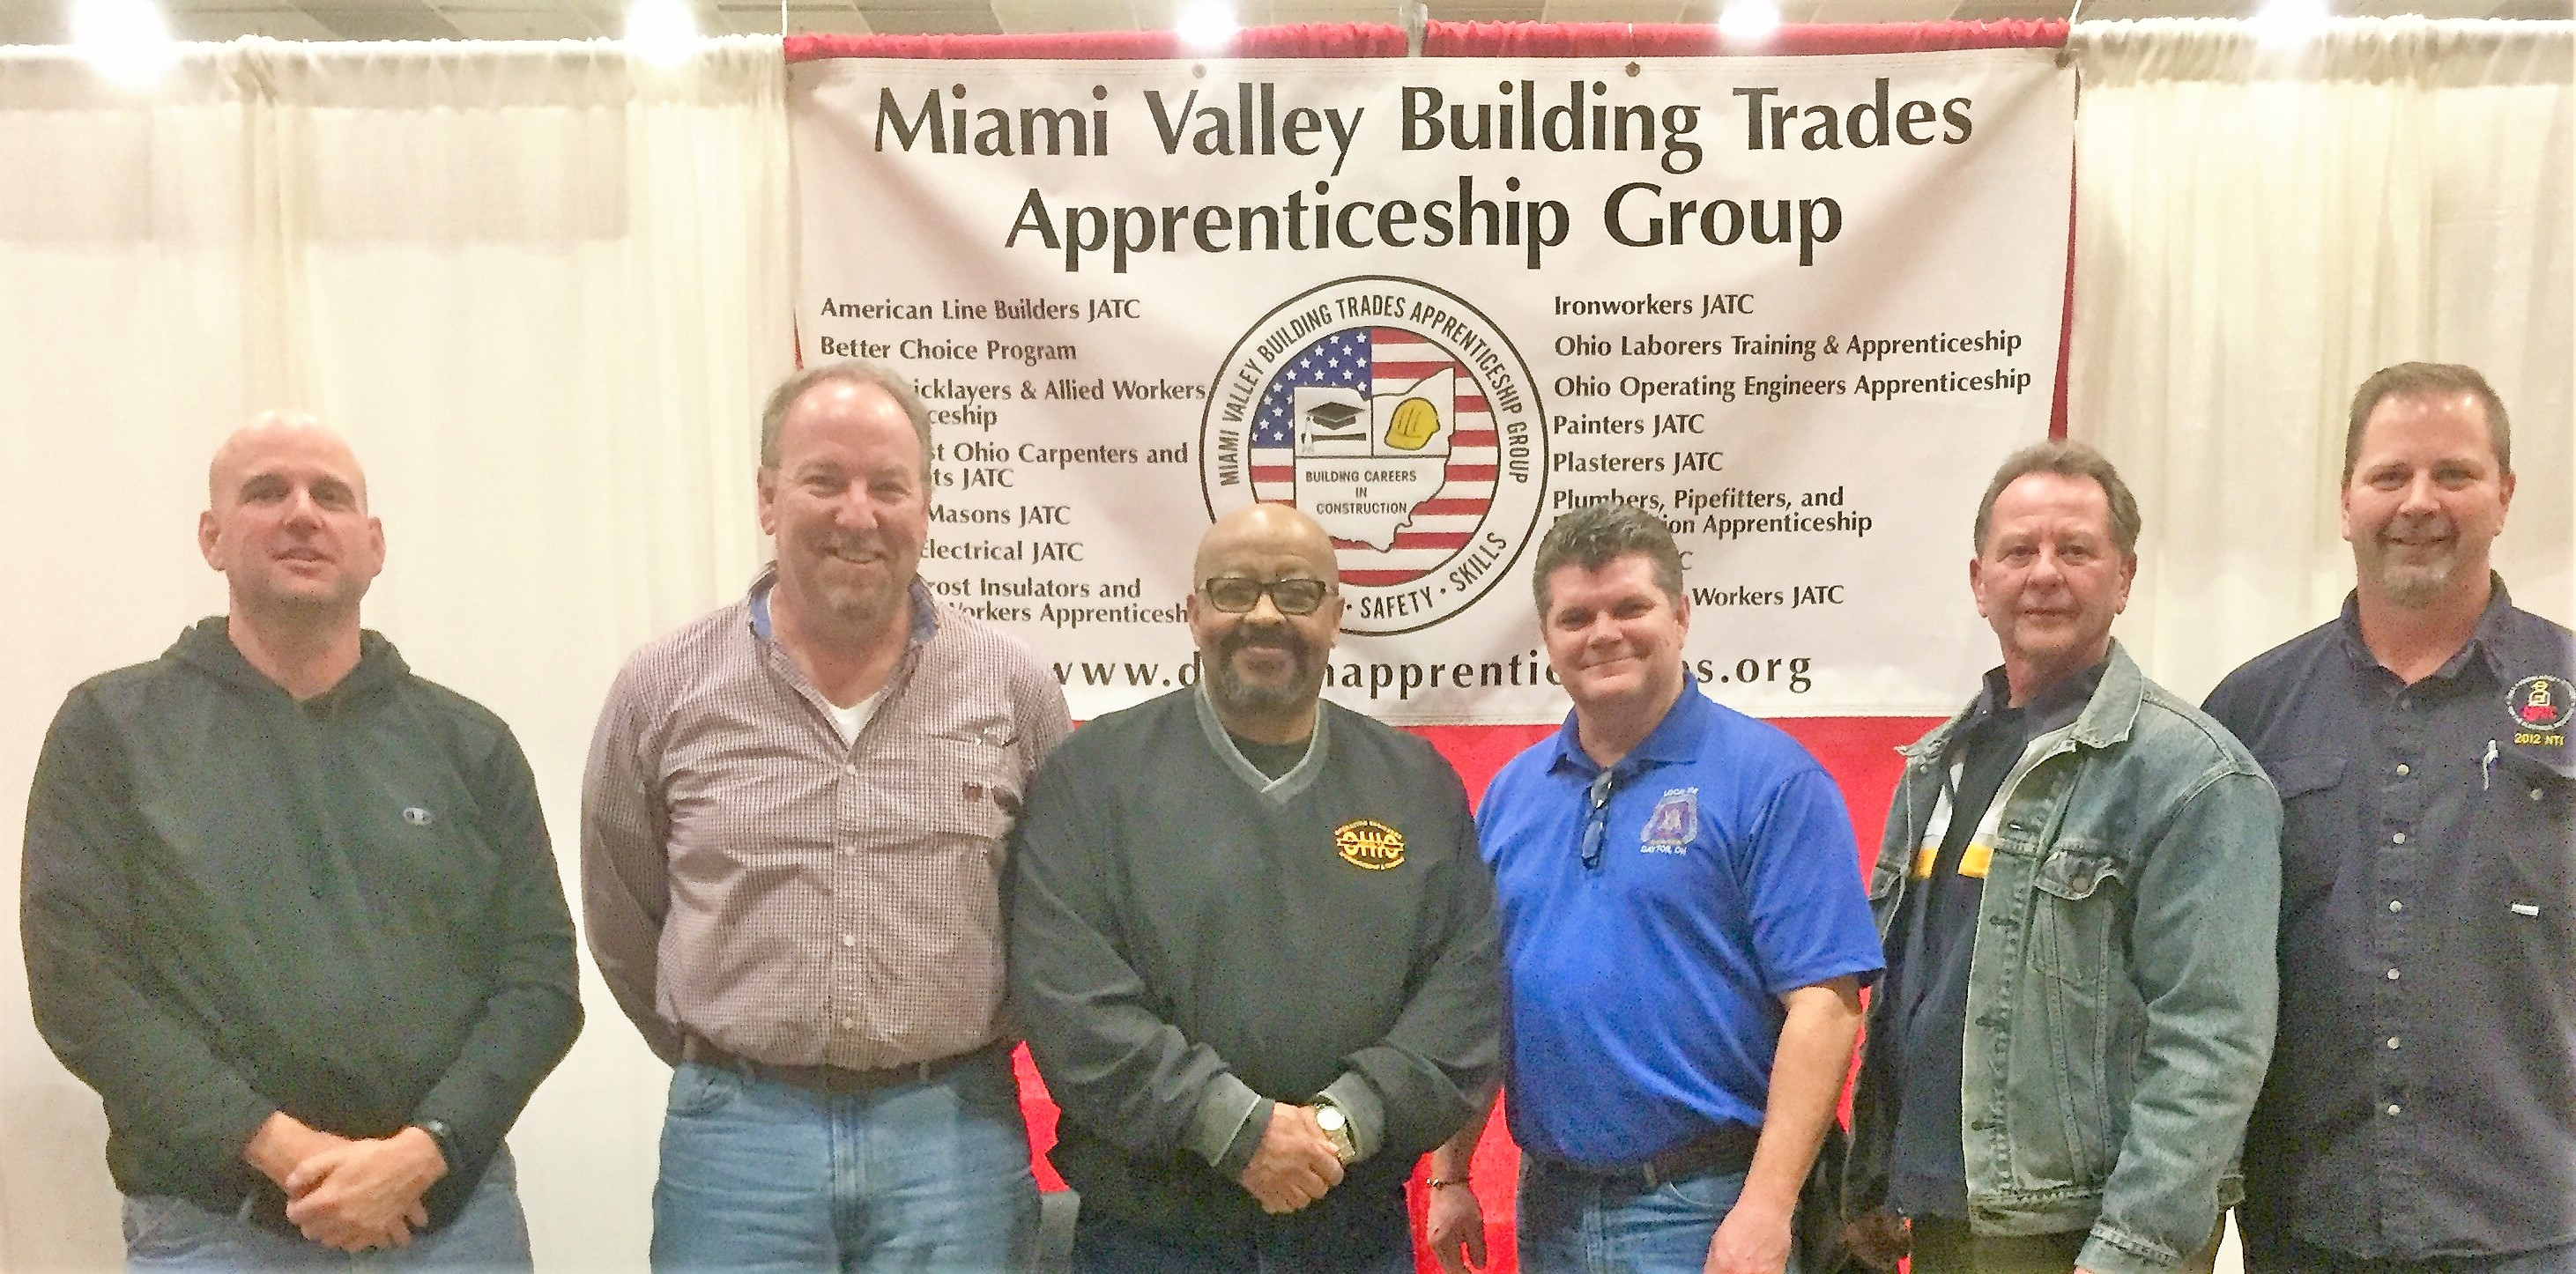 MV Building Trades Apprenticeship Group Attends Construction Career Expo